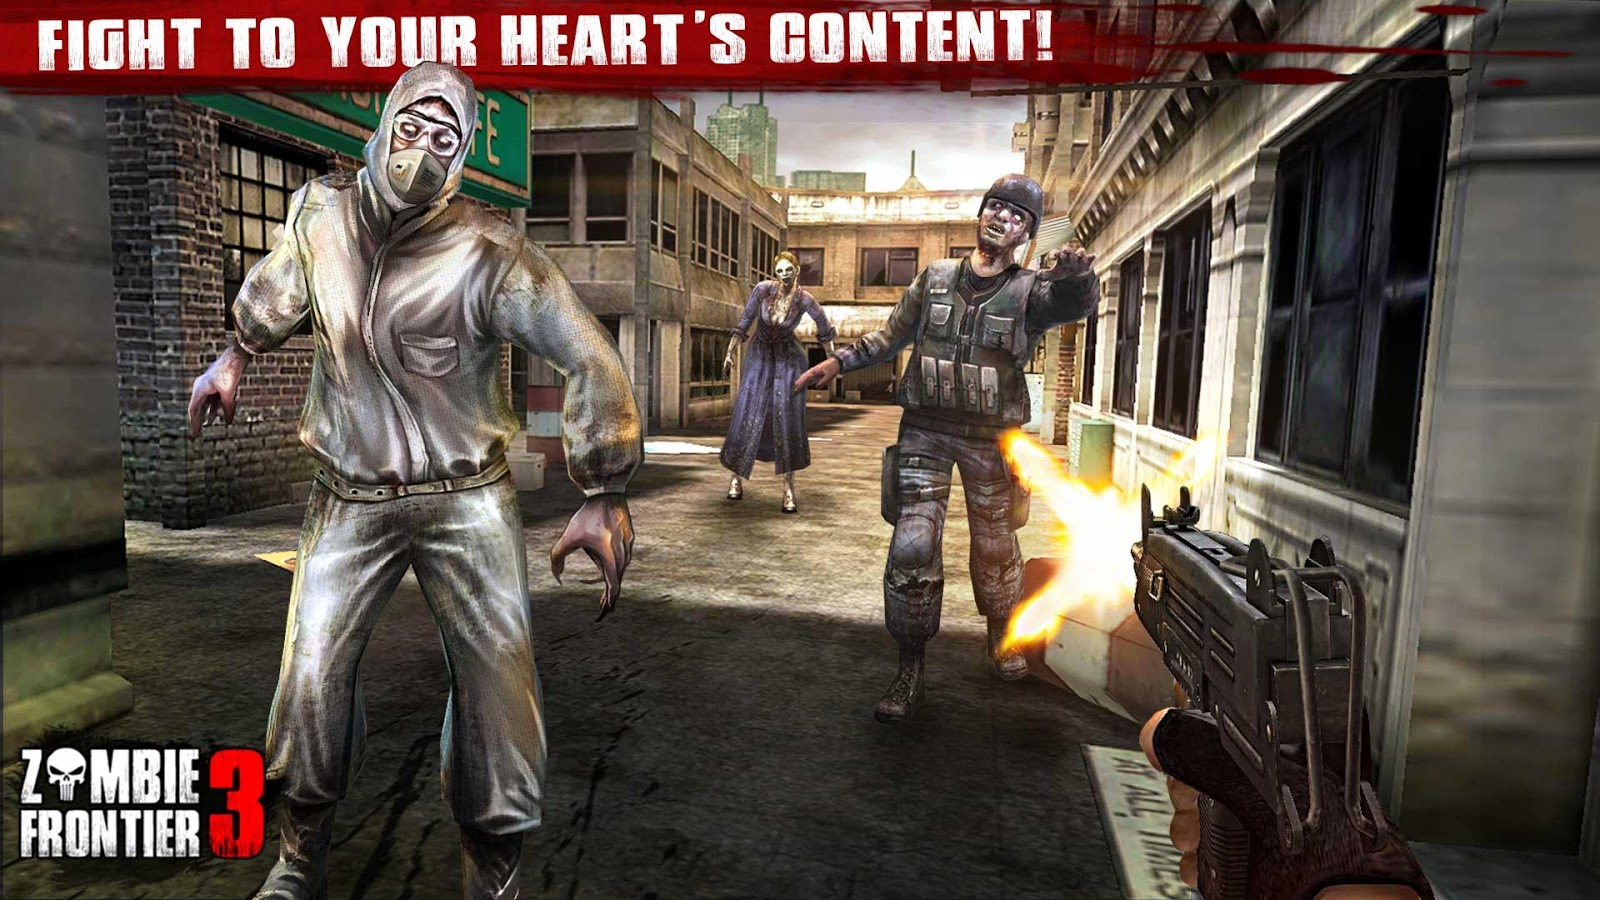 Zombie Frontier 3-Shoot Target Screenshot 1